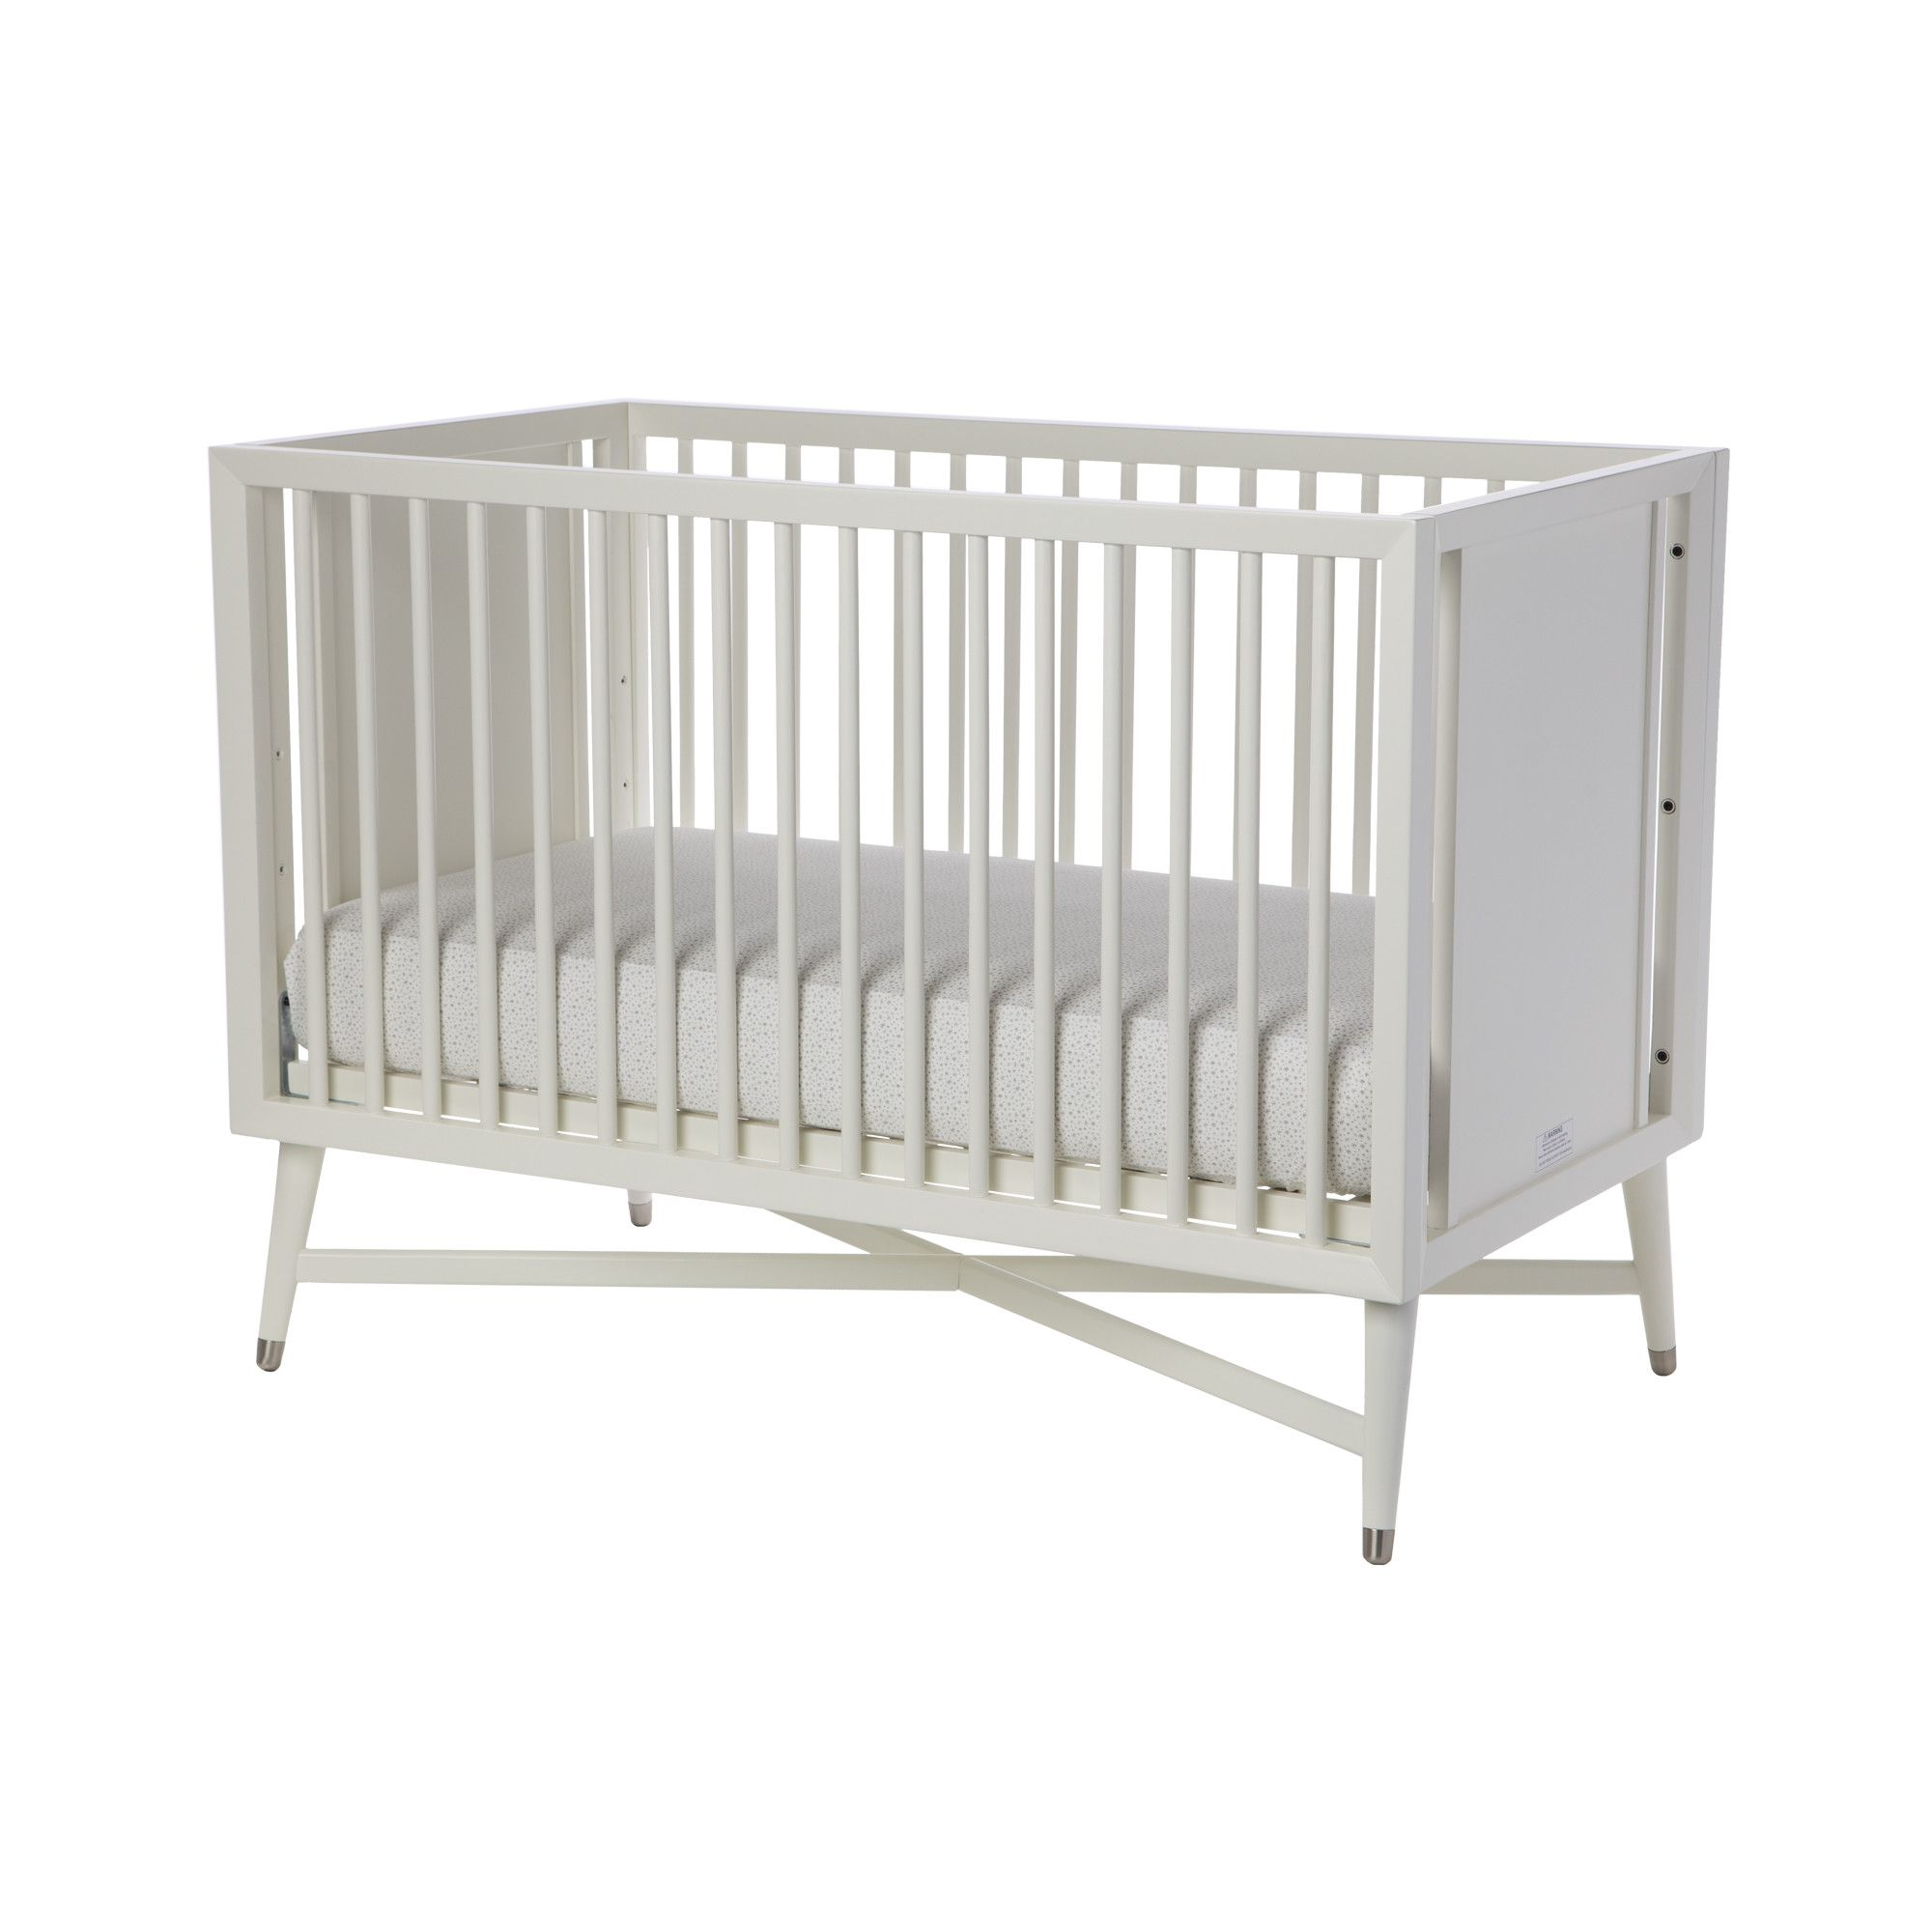 Pottery barn kids sleigh crib - 17 Best Images About Cribs On Pinterest Midnight Blue Pottery Barn Kids And Nursery Furniture Sale